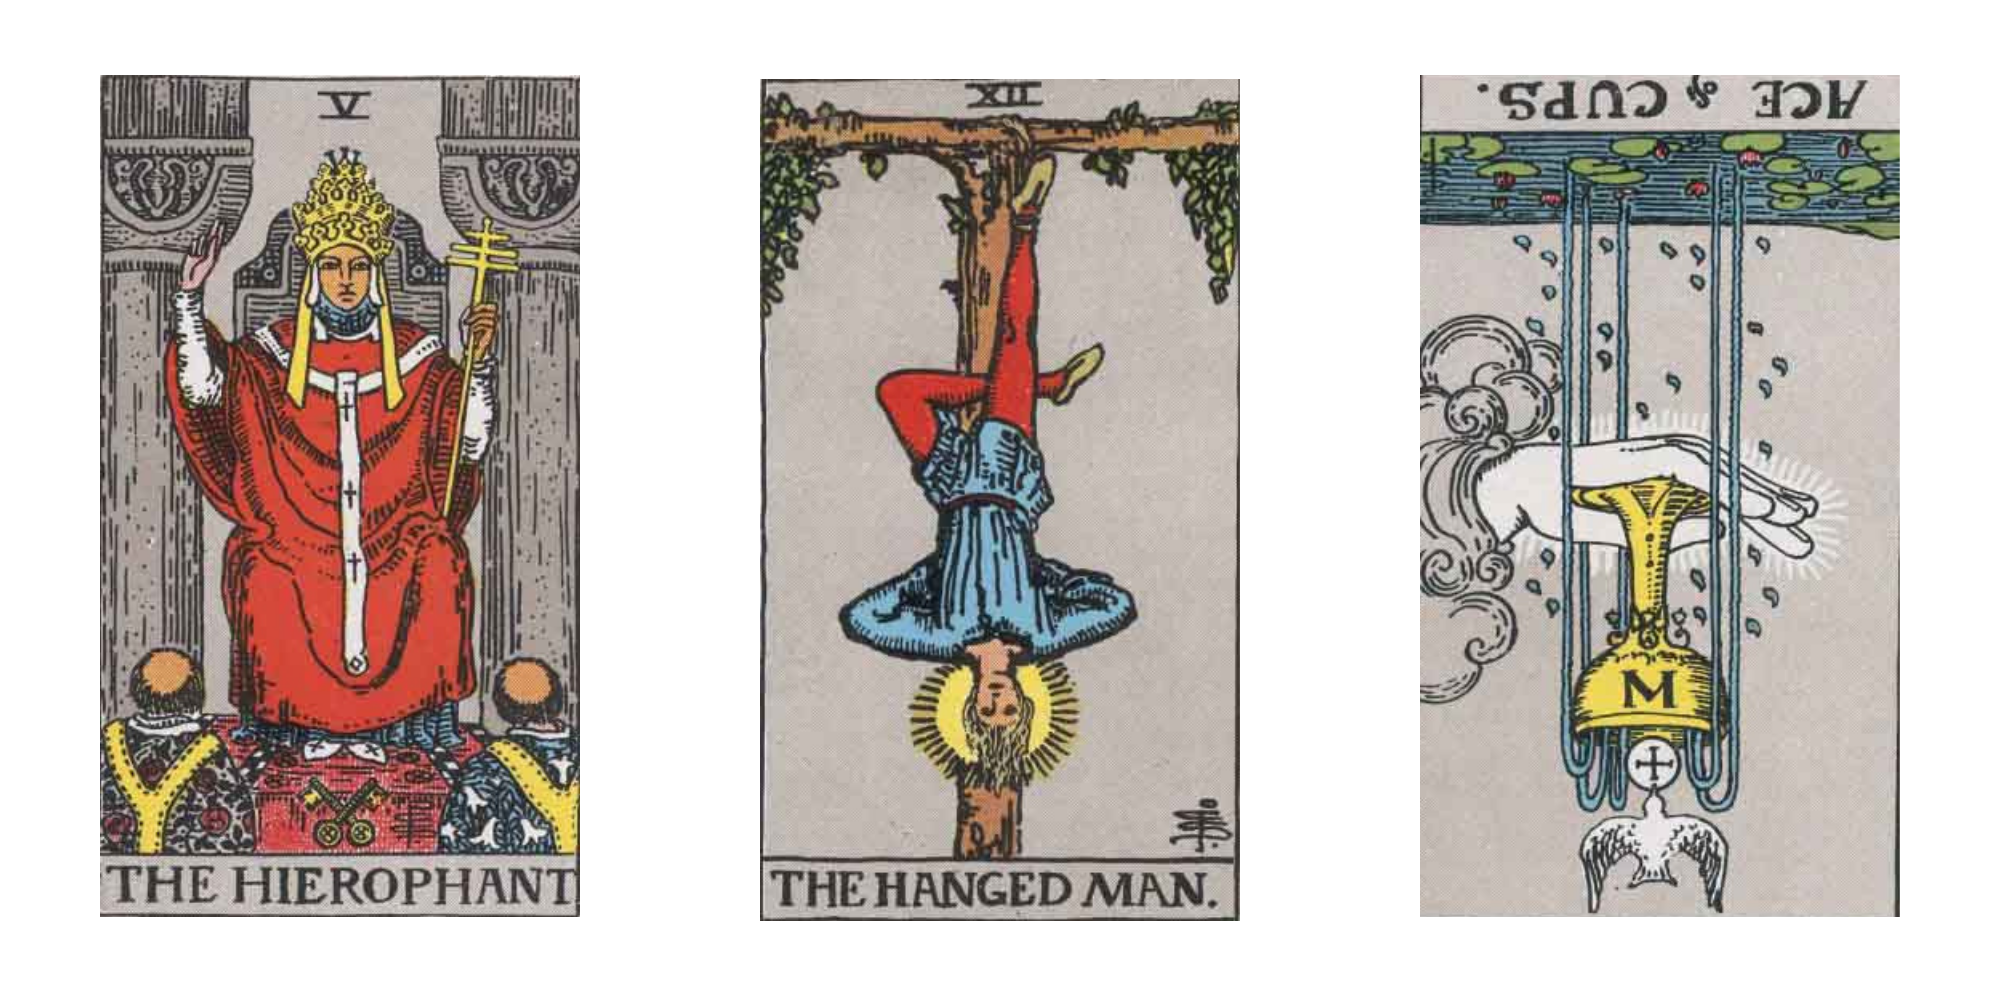 Three tarot cards - The Hierophant, The Hanged Man, and the reverse Ace of Cups - sit in a row after being pulled for a summer tarot reading.